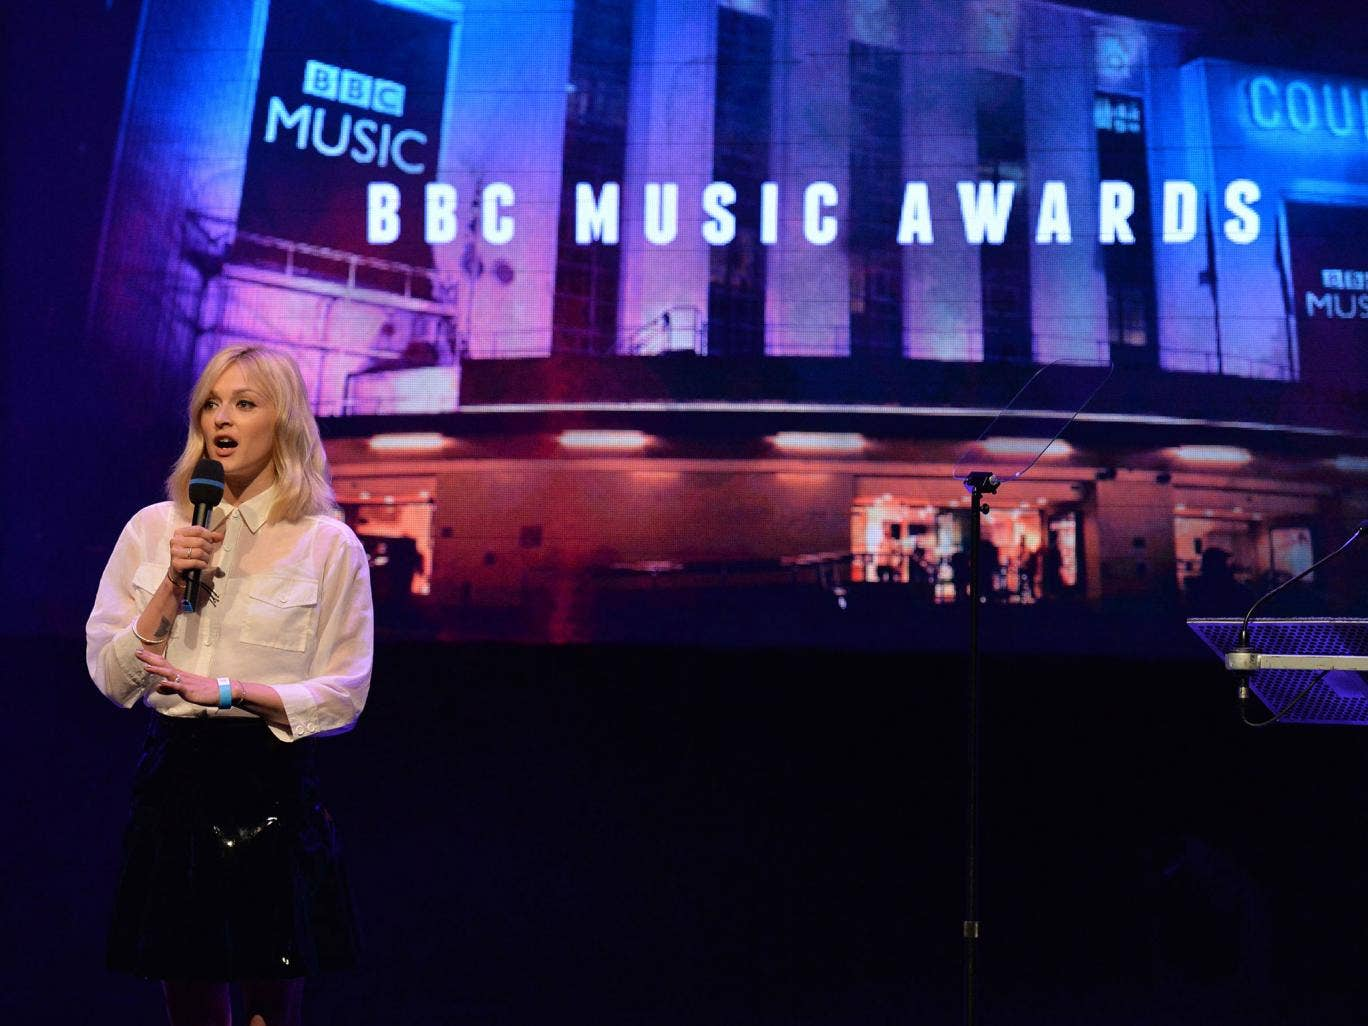 Fearne Cotton and Chris Evans will present the first ever BBC Music Awards at Earls Court in December